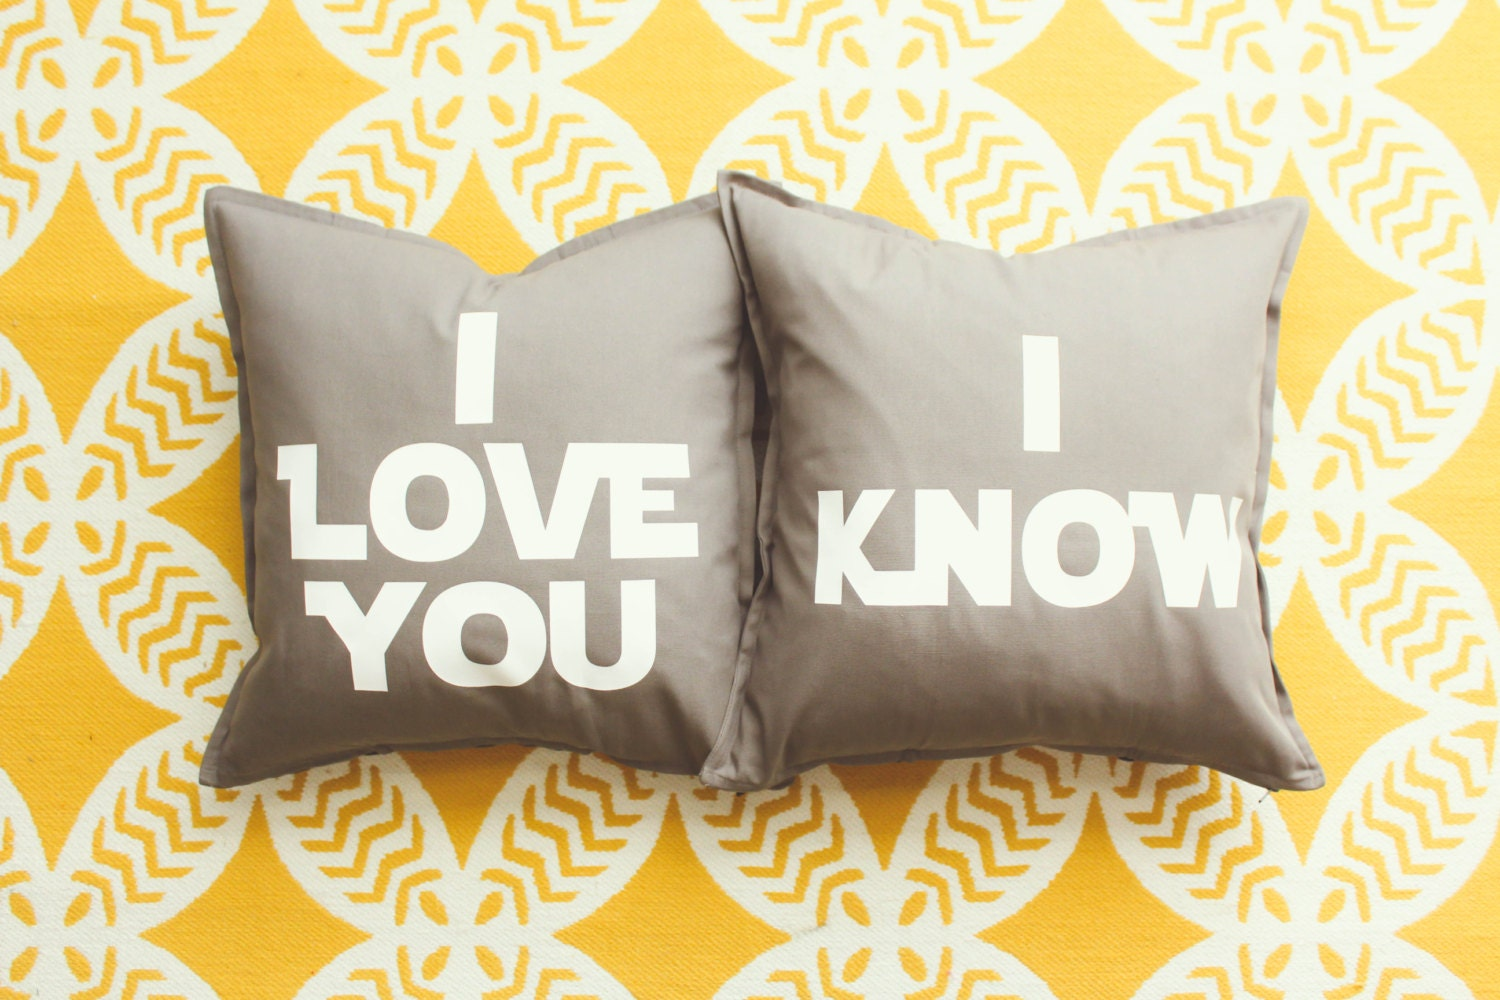 Star Wars I Love Youi Know Pillow Cover Set Wedding Gift